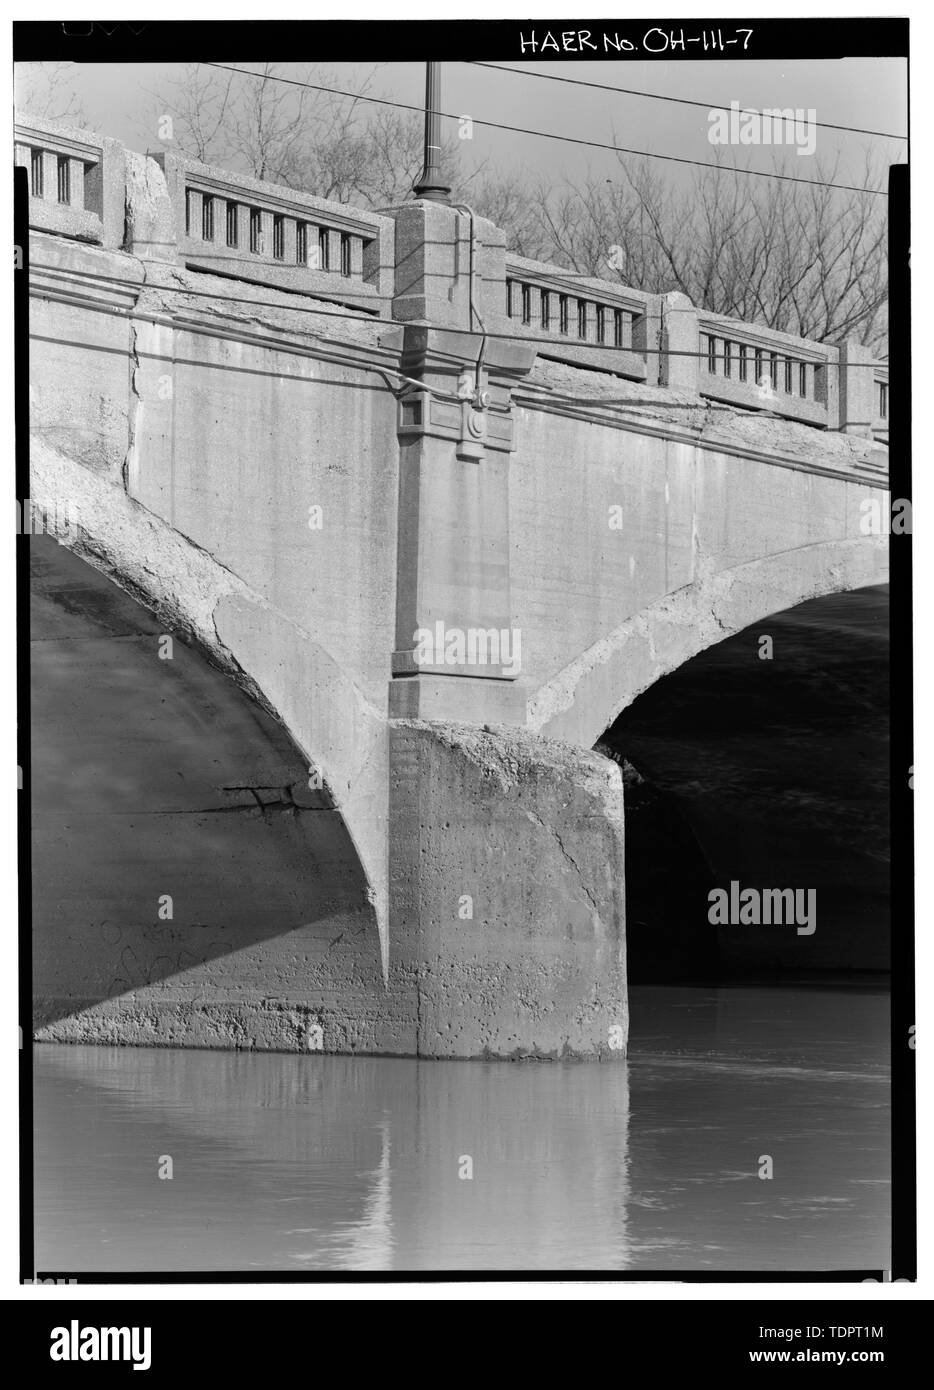 Pier detail. - Third Avenue Bridge, Spanning Olentangy River of West Third Avenue, Columbus, Franklin County, OH - Stock Image